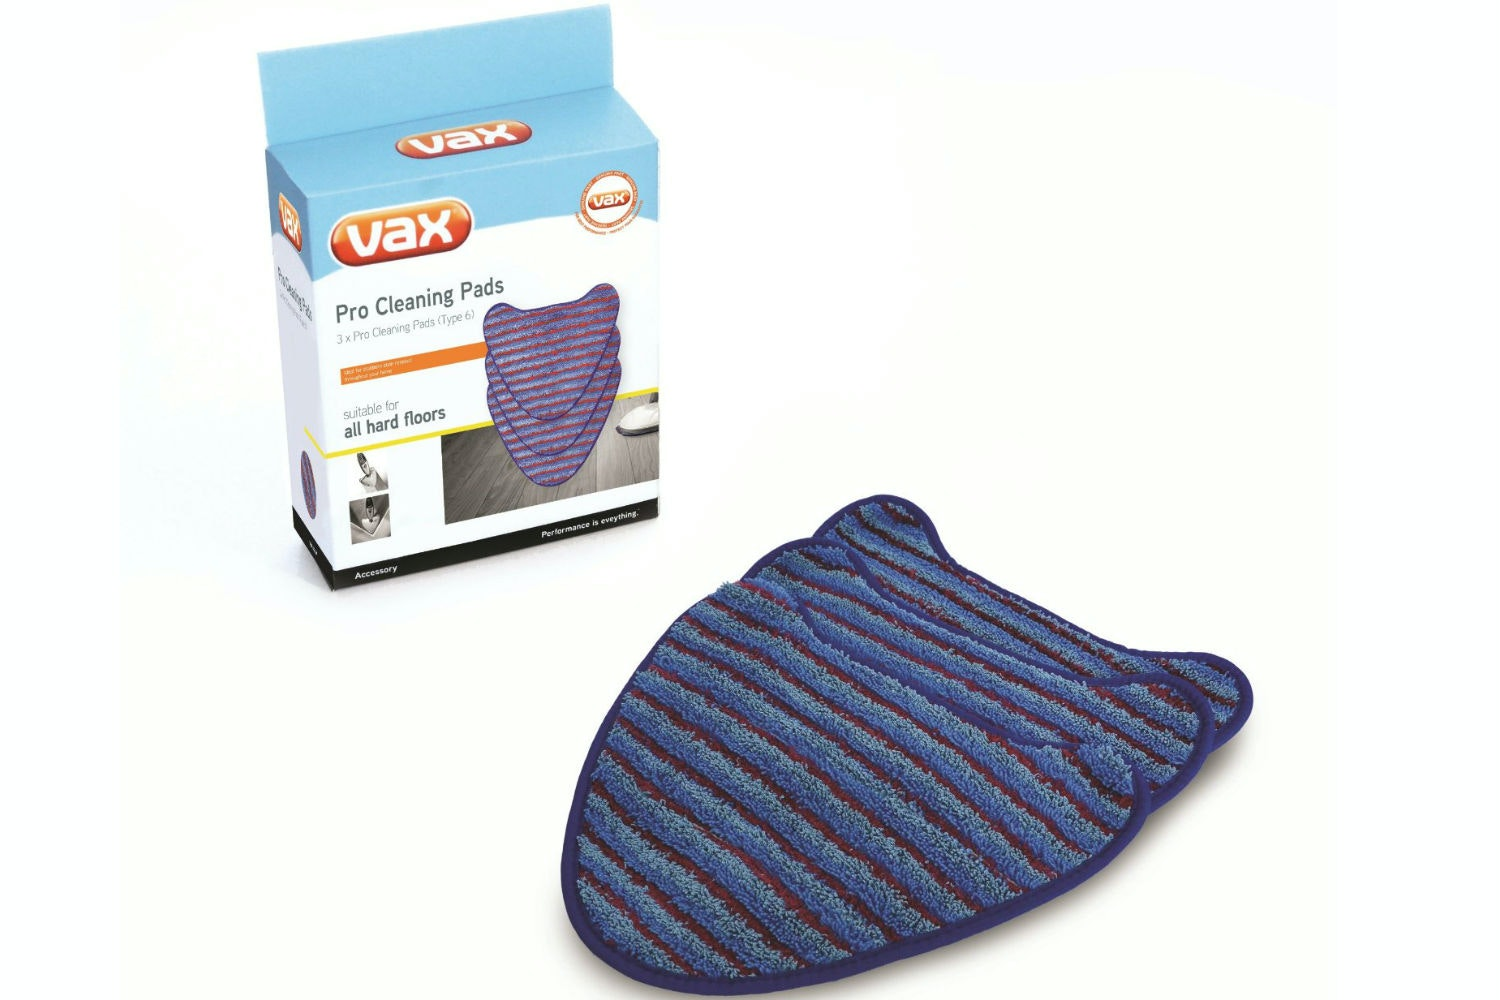 Vax Steam Pro Cleaning Pads | Type 6